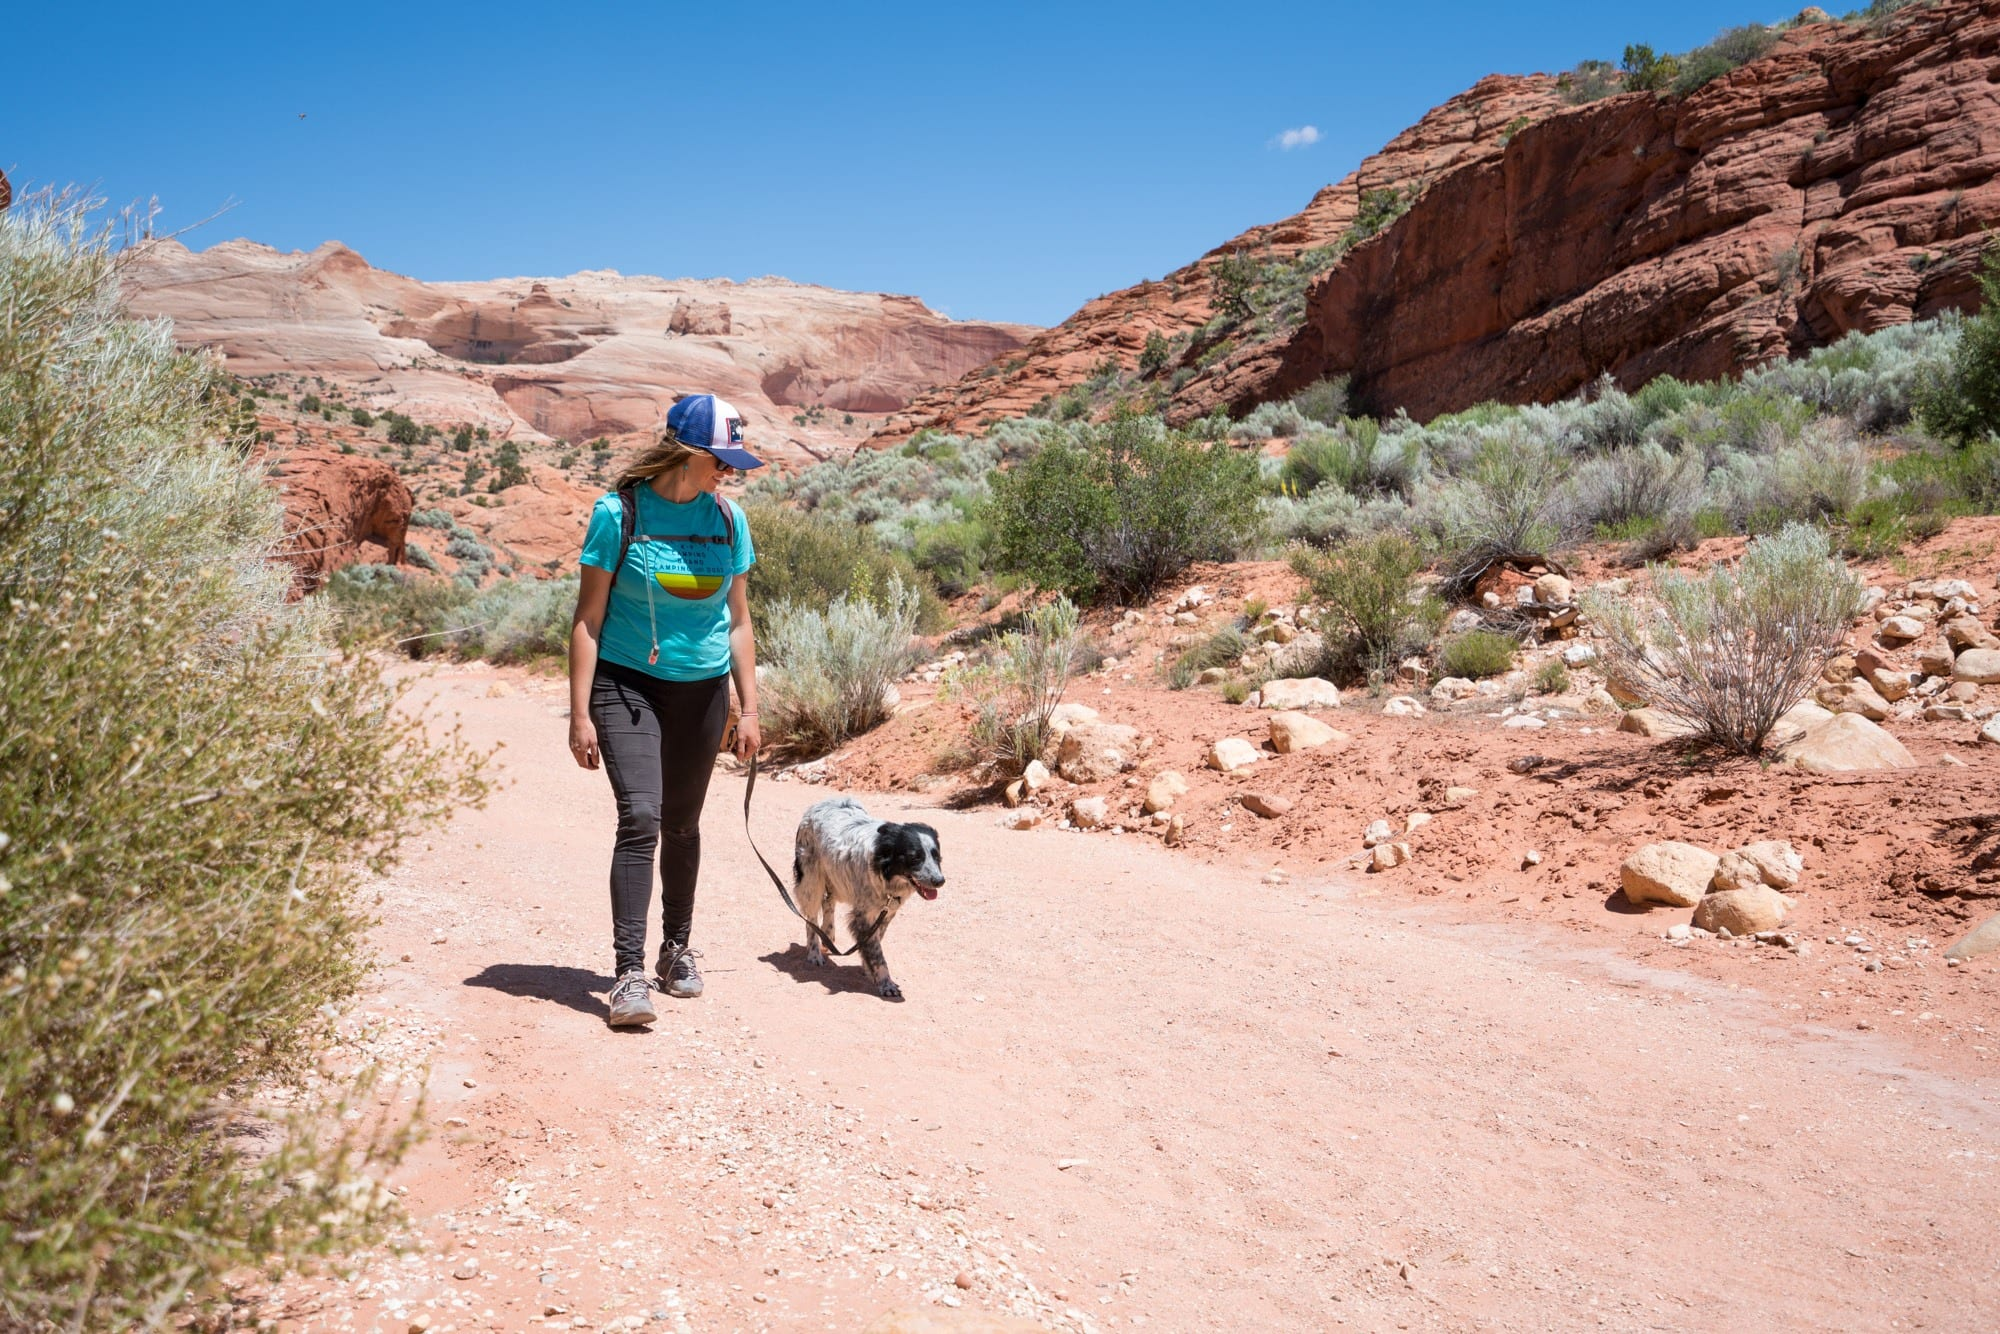 Discover the Do's and Don'ts of how to be respectful to others and to the environment while you are out on the trail. Here is a complete guide to hiking trail etiquette - the unwritten rules of hiking - that every hiker should know.